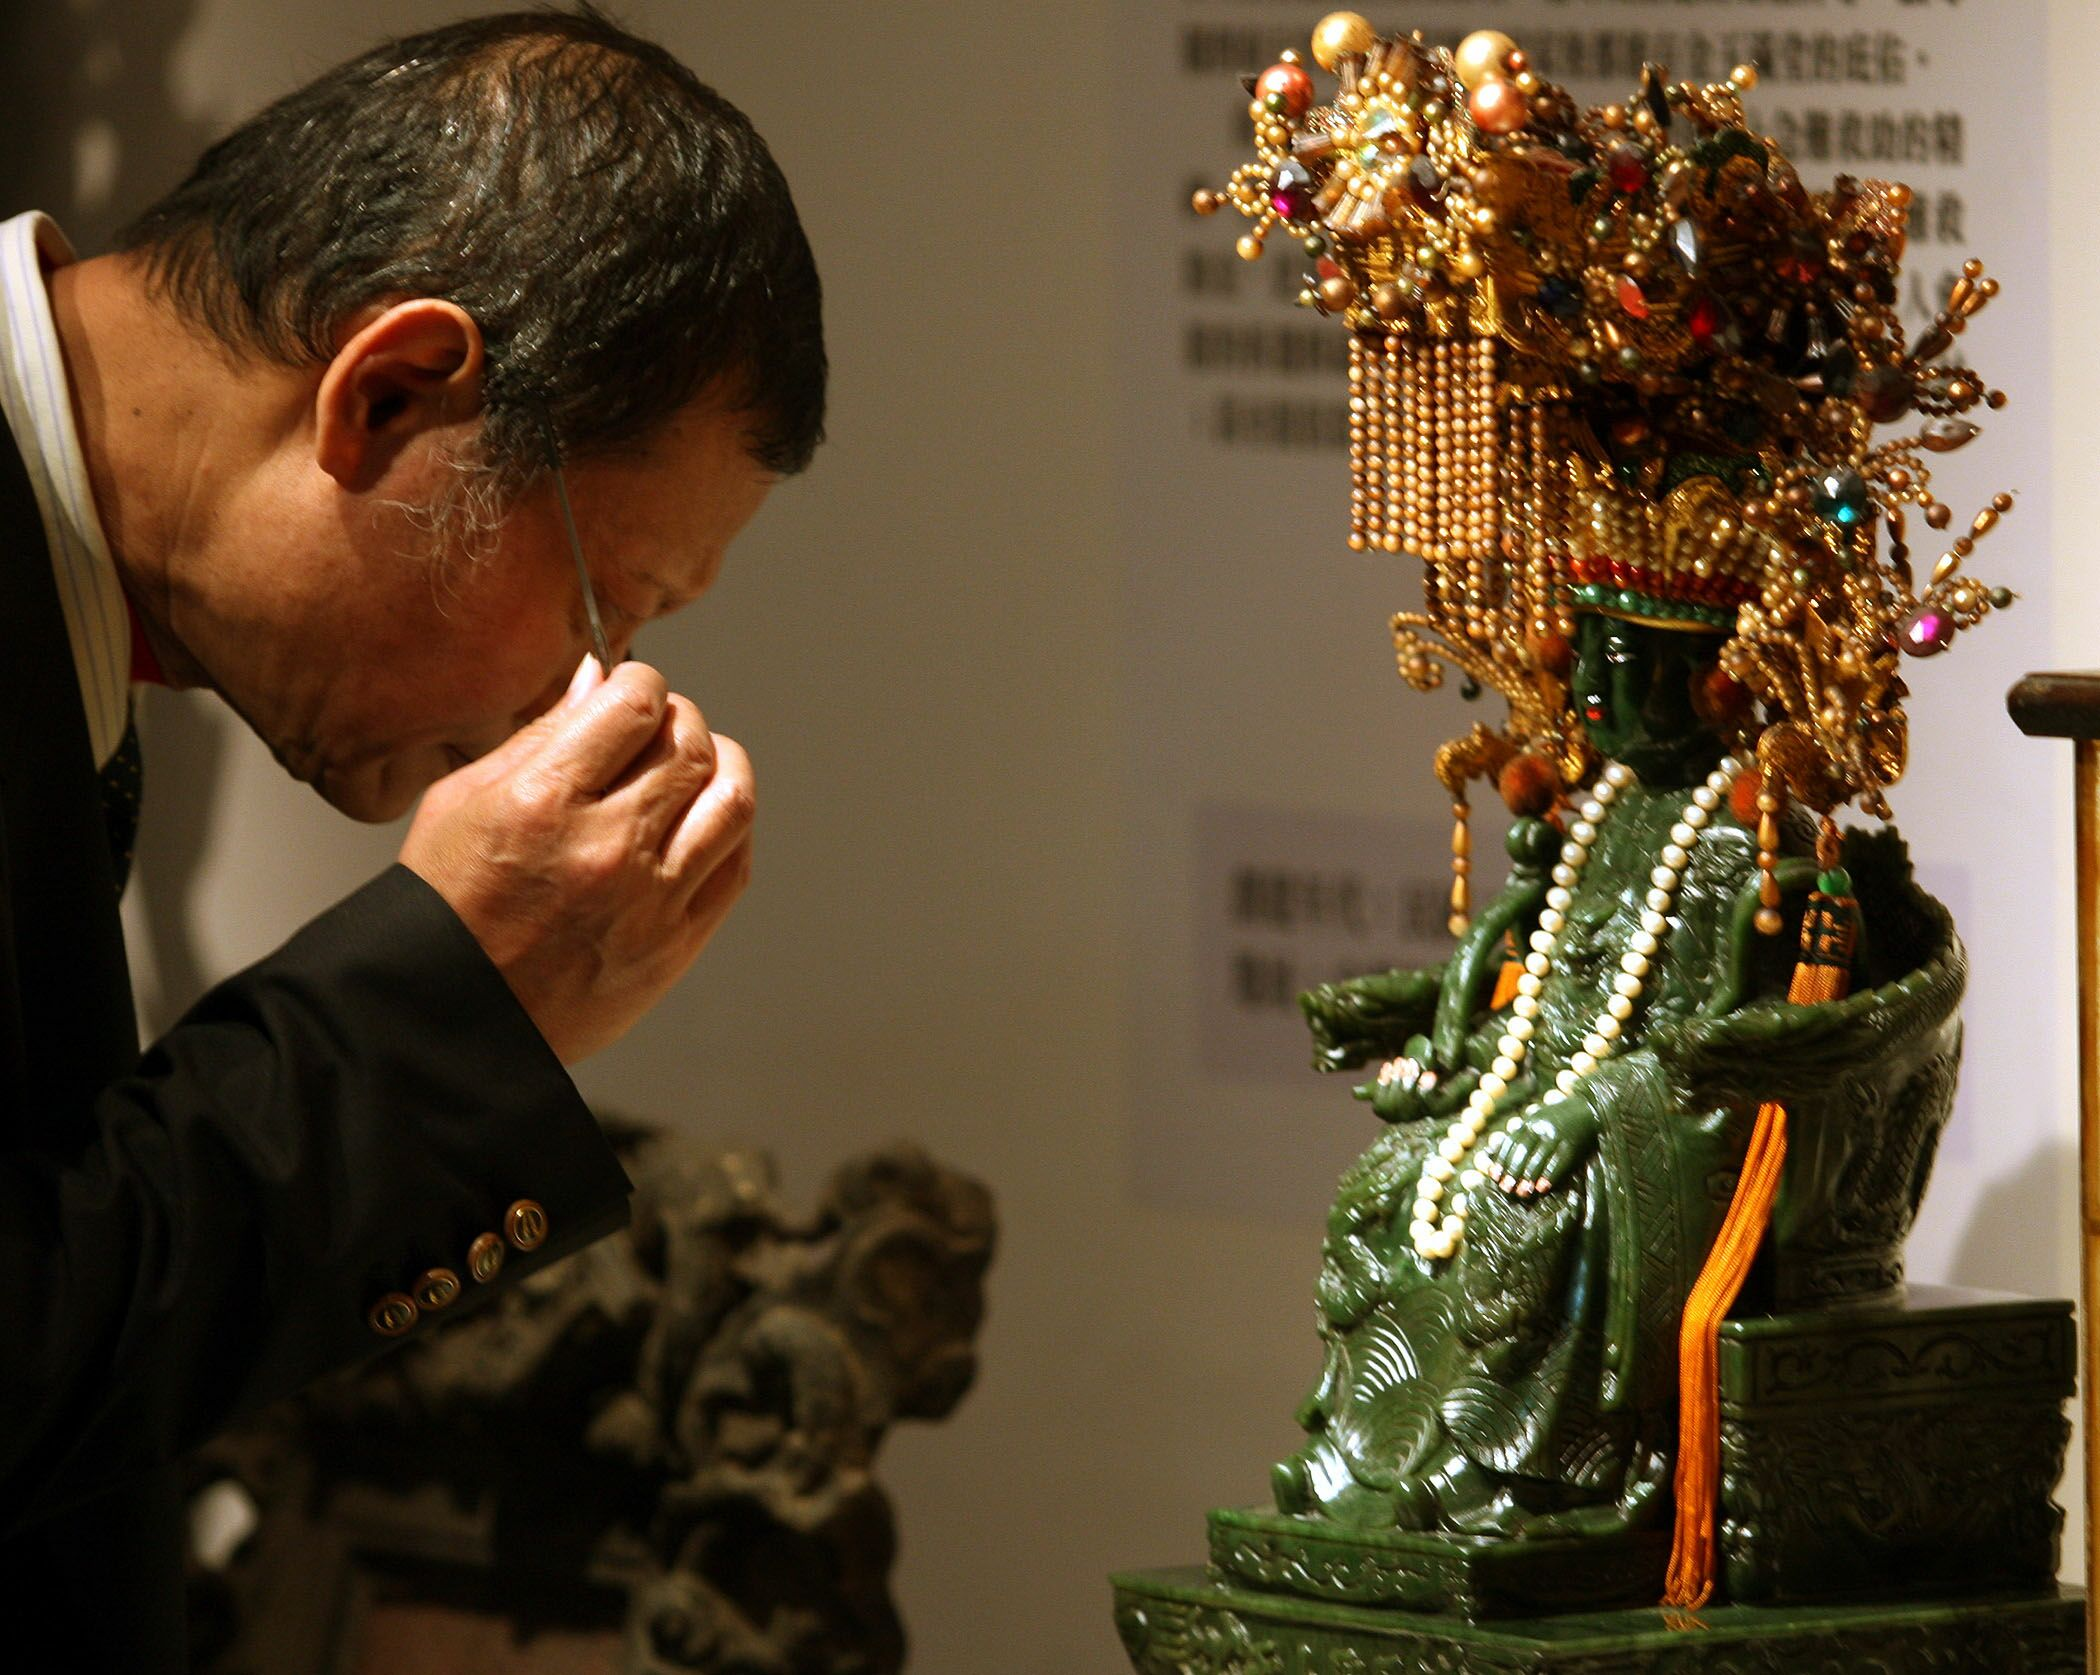 A visitor carefully reads information about a Ma Zu statue at the National Museum of History exhibition.